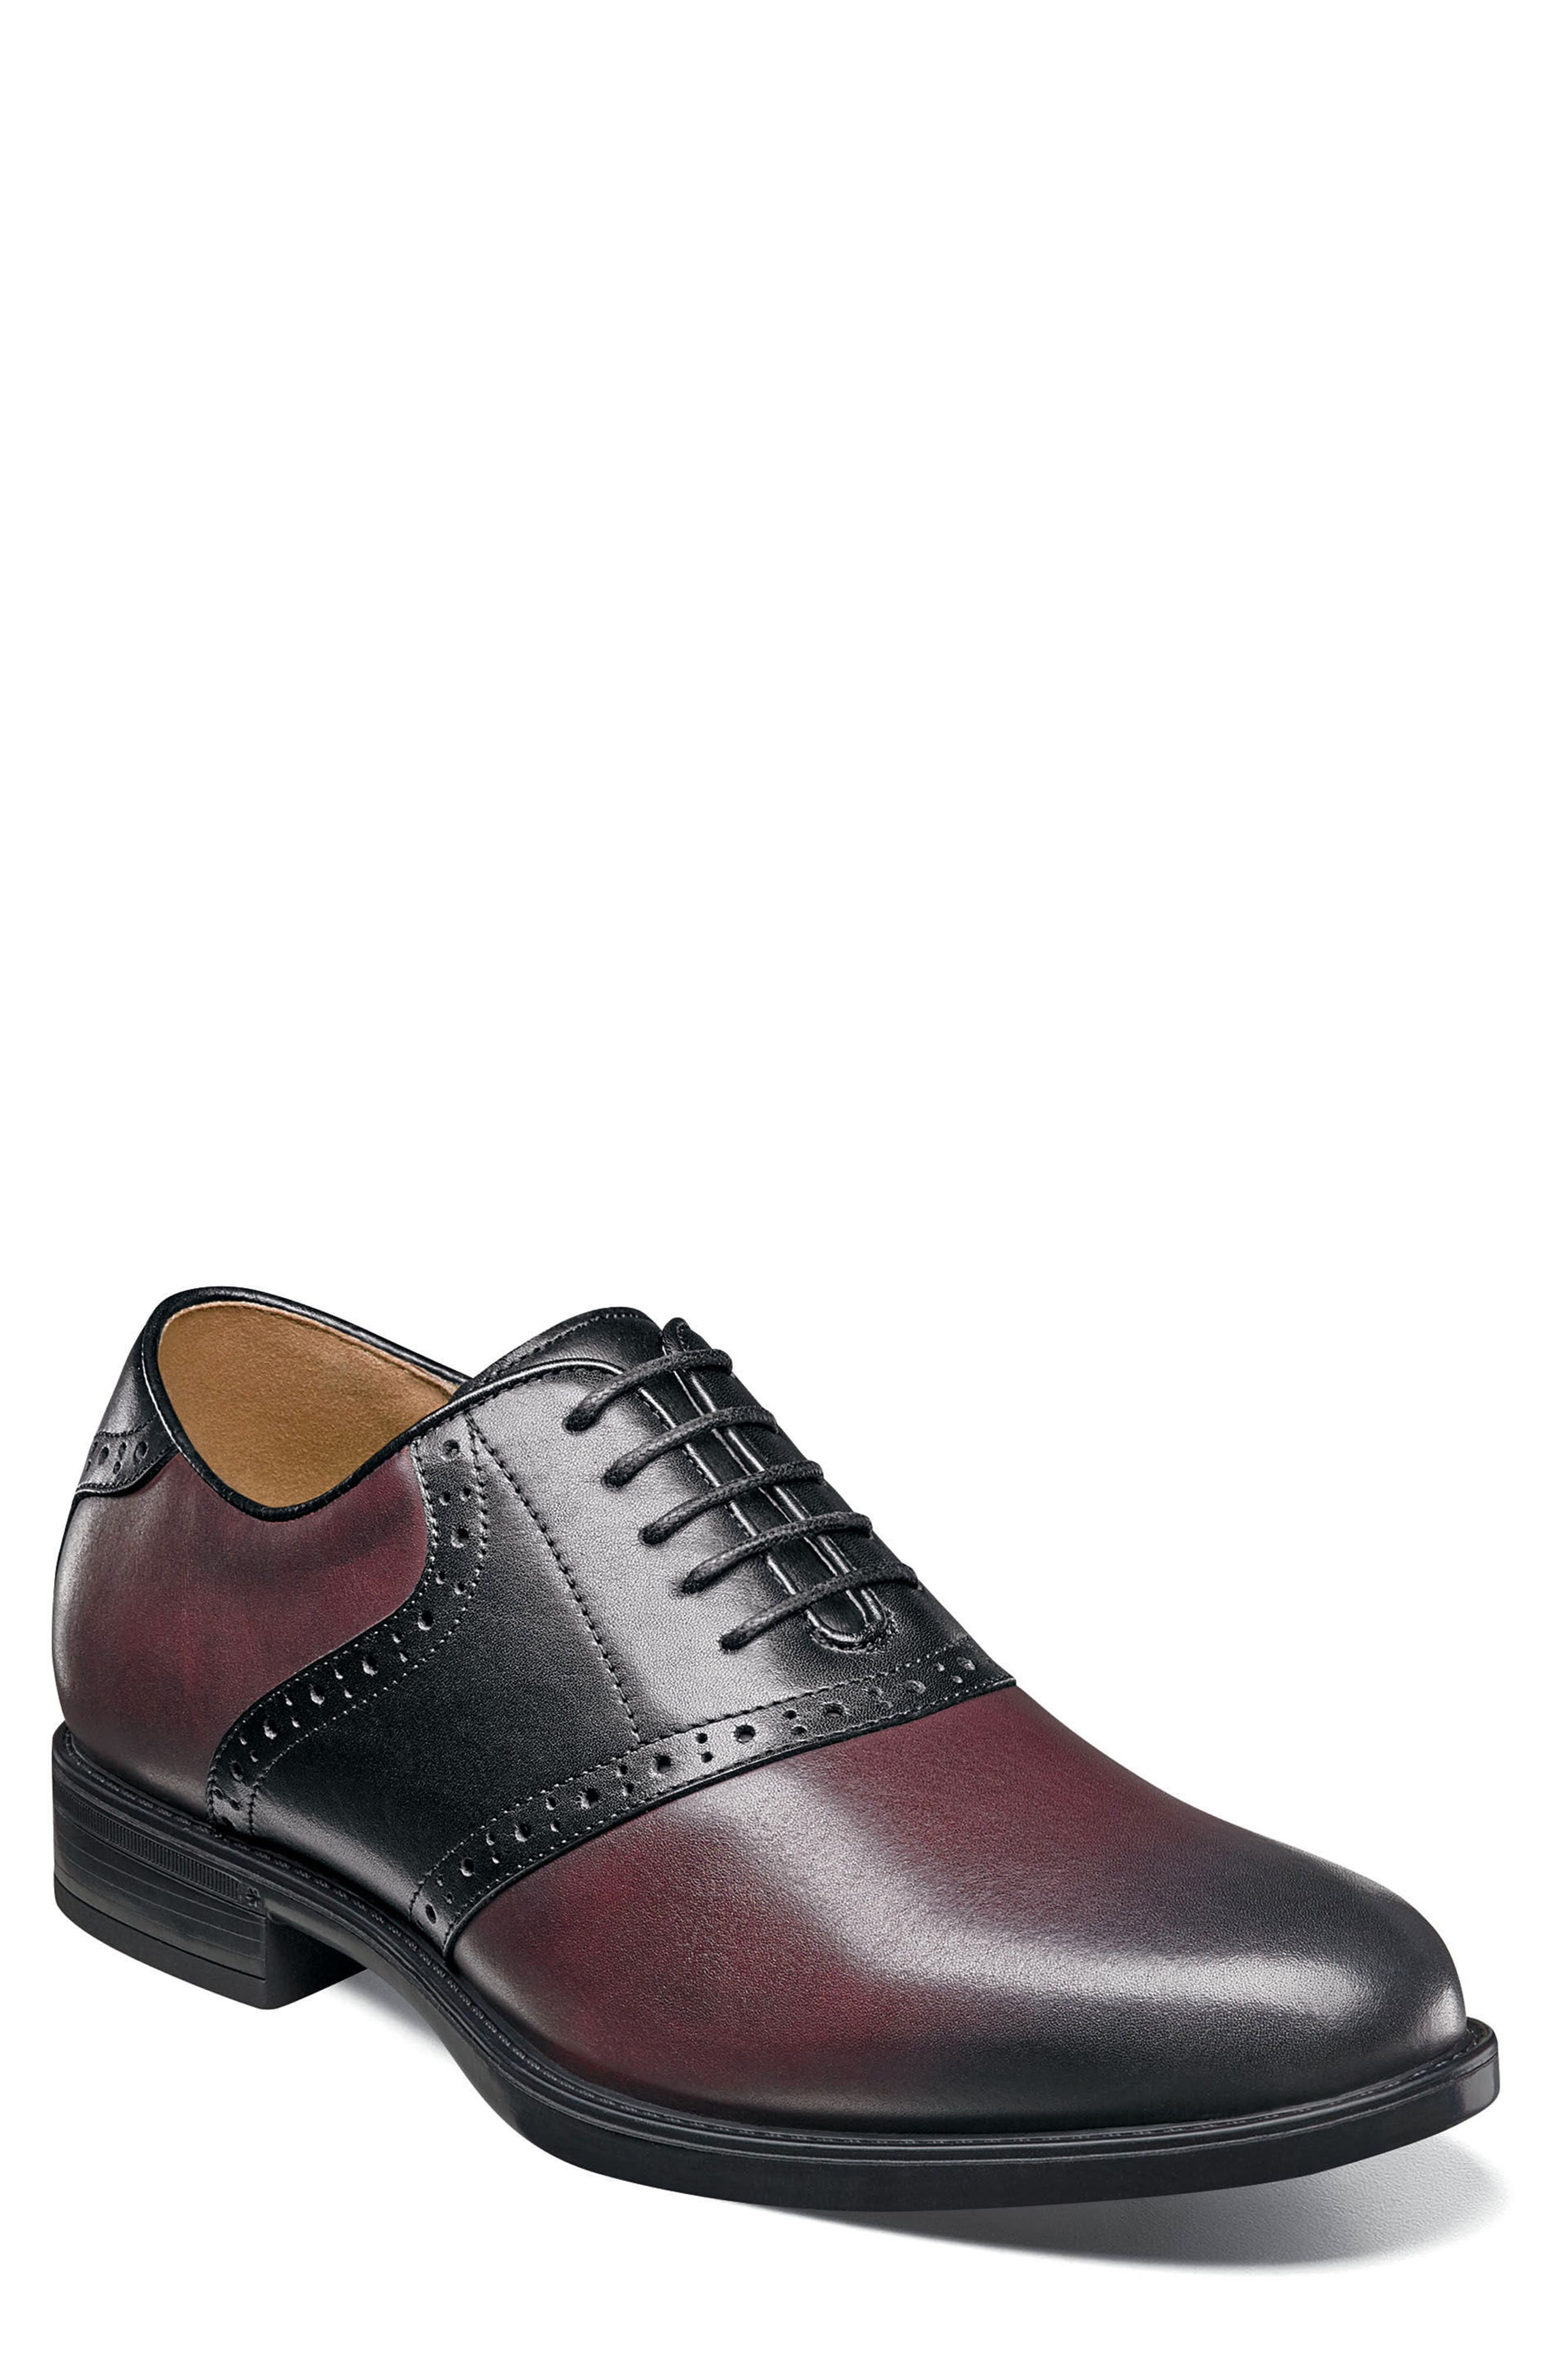 Florsheim Midtown Saddle Oxford (Men)